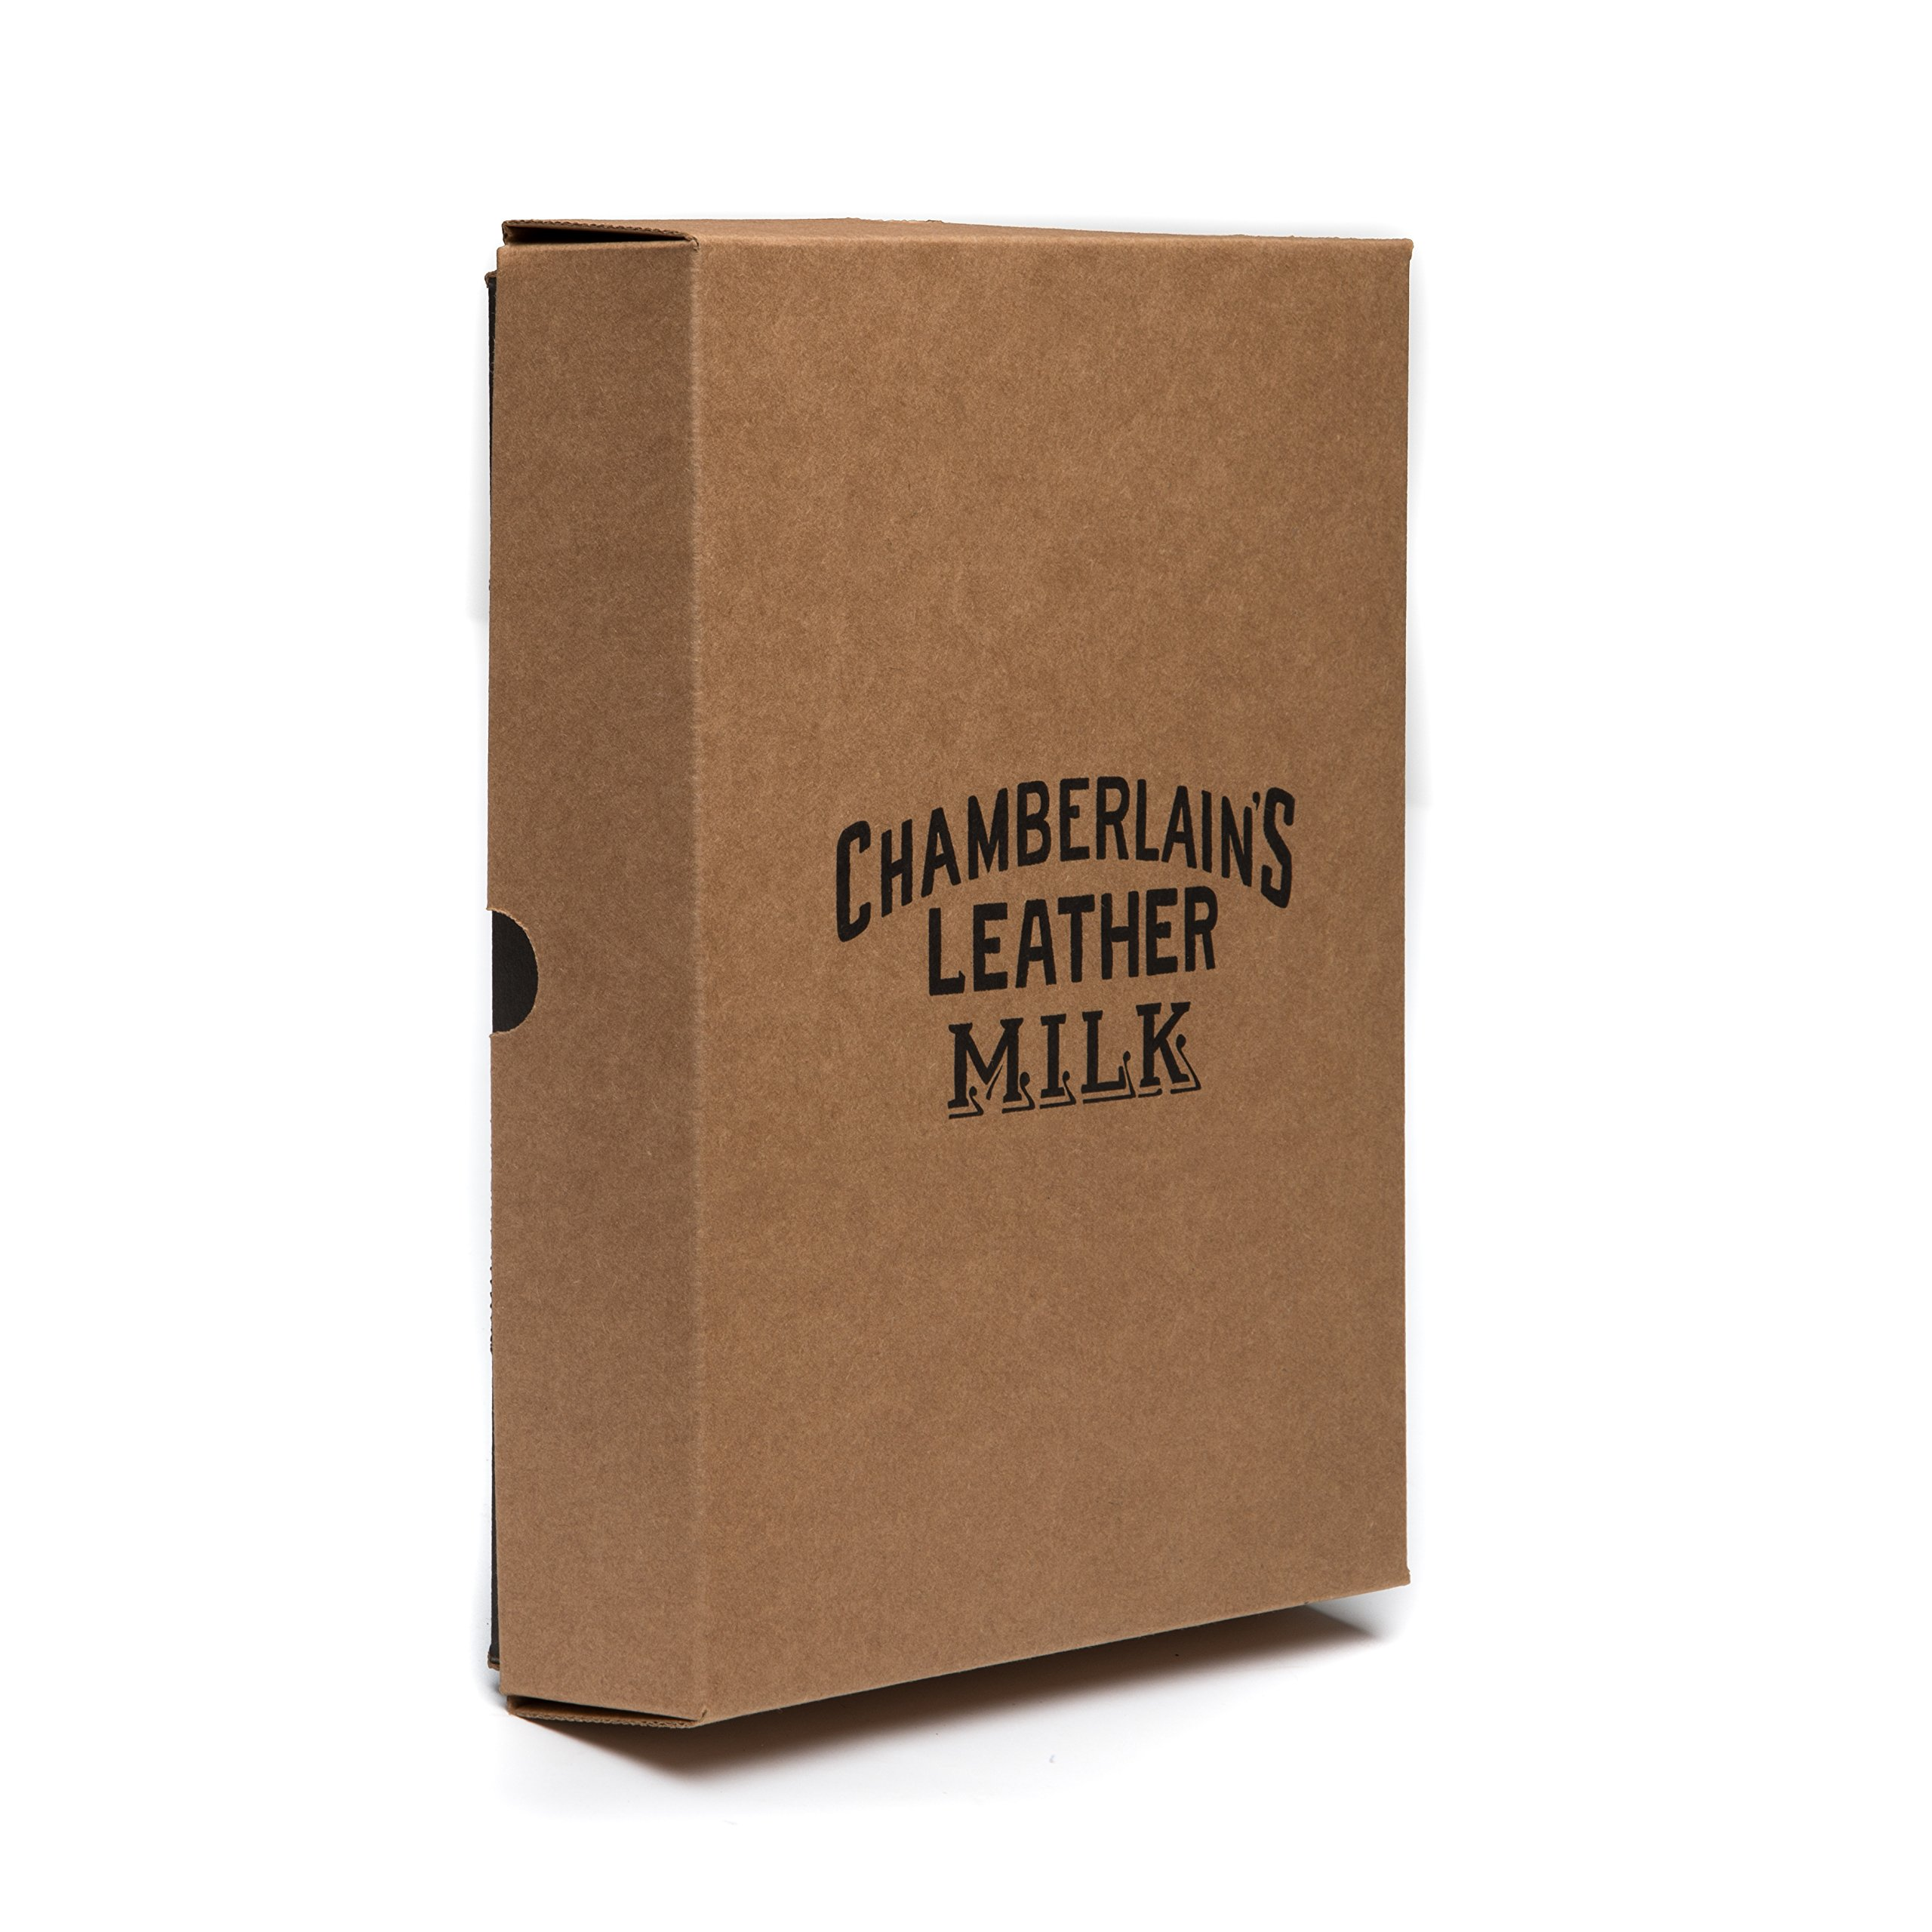 Leather Milk Leather Restoration Kit - Heal & Restore Antique Leather. Cleaner, Conditioner, Water Protectant, Healing Balm, Detailing Brushes, Pads, More! All-Natural. Made in USA by Chamberlain's Leather Milk (Image #3)